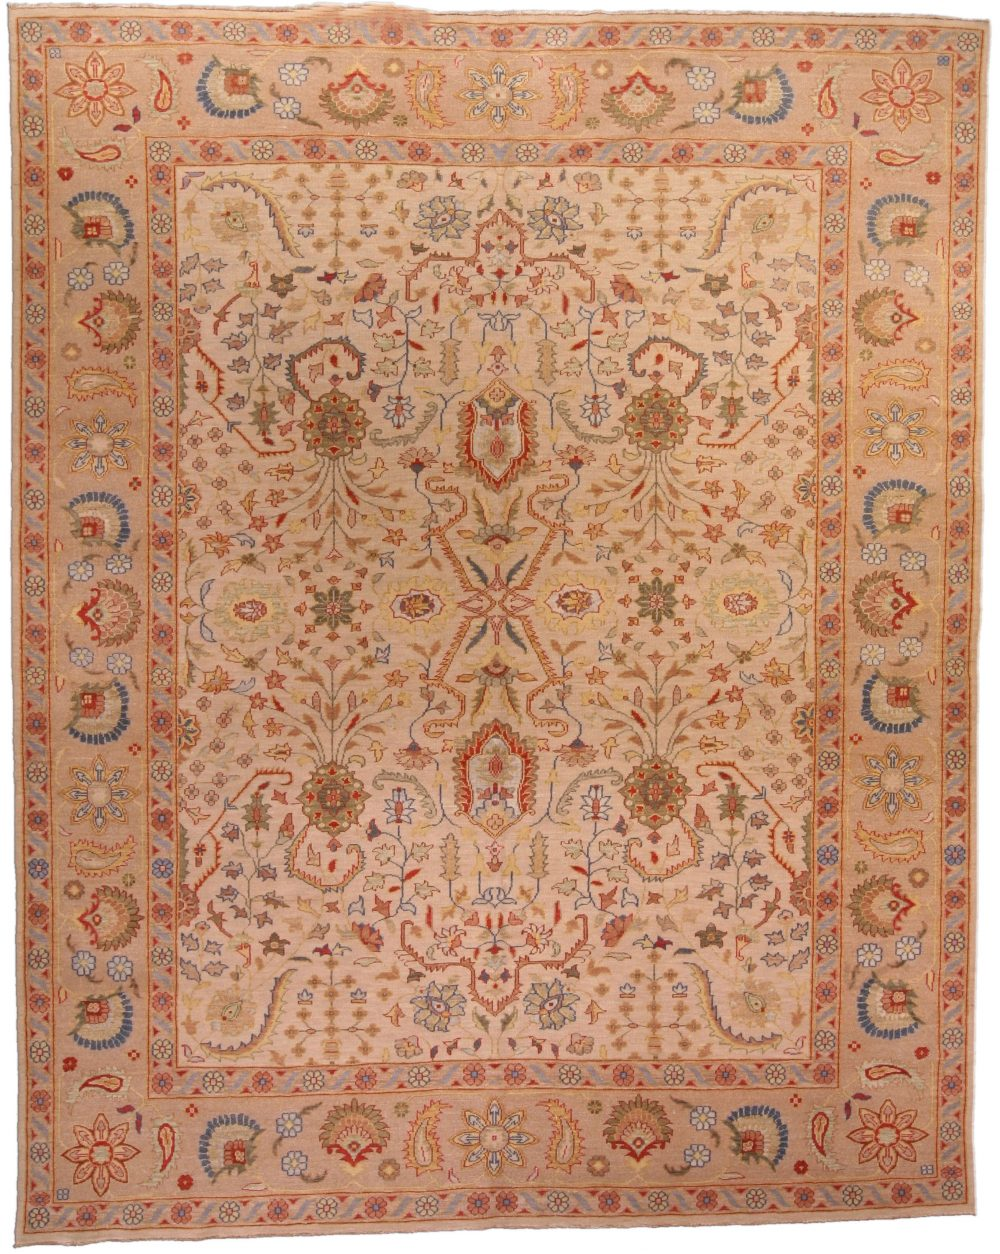 Egyptian-inspired new Rug 31A